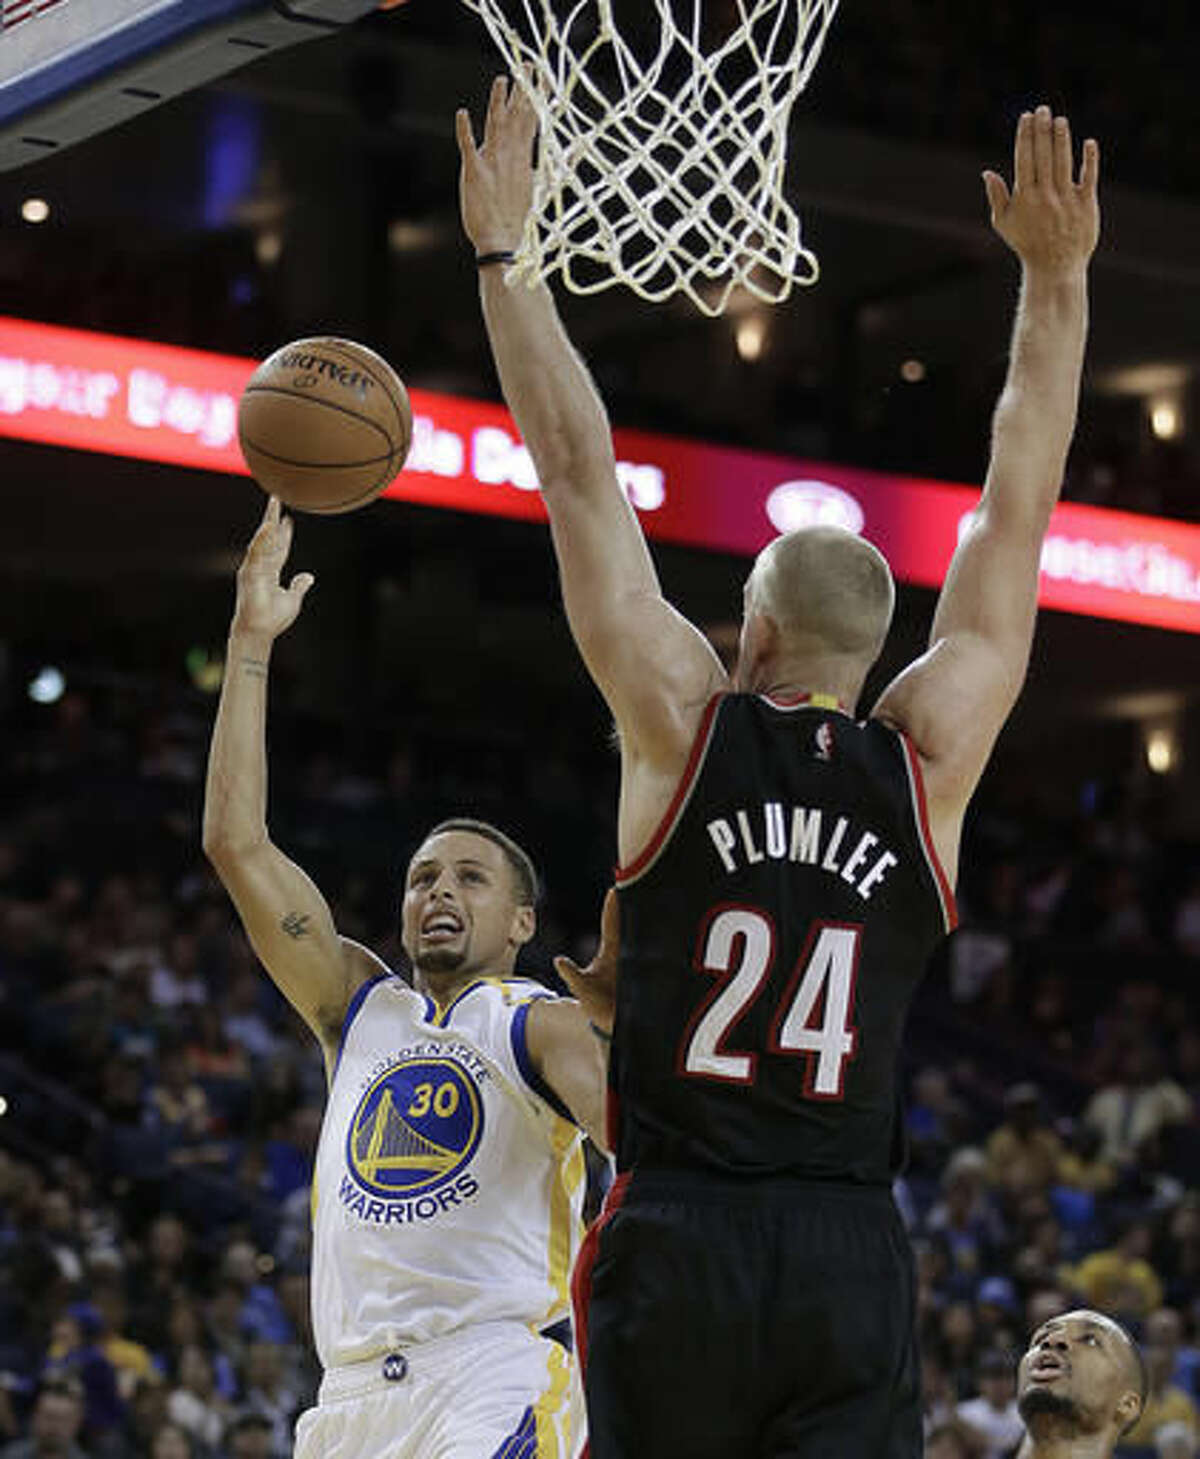 Golden State Warriors' Stephen Curry, left, shoots against Portland Trail Blazers' Mason Plumlee (24) during the second half of a preseason NBA basketball game Friday, Oct. 21, 2016, in Oakland, Calif. Warriors won, 107-96. (AP Photo/Ben Margot)